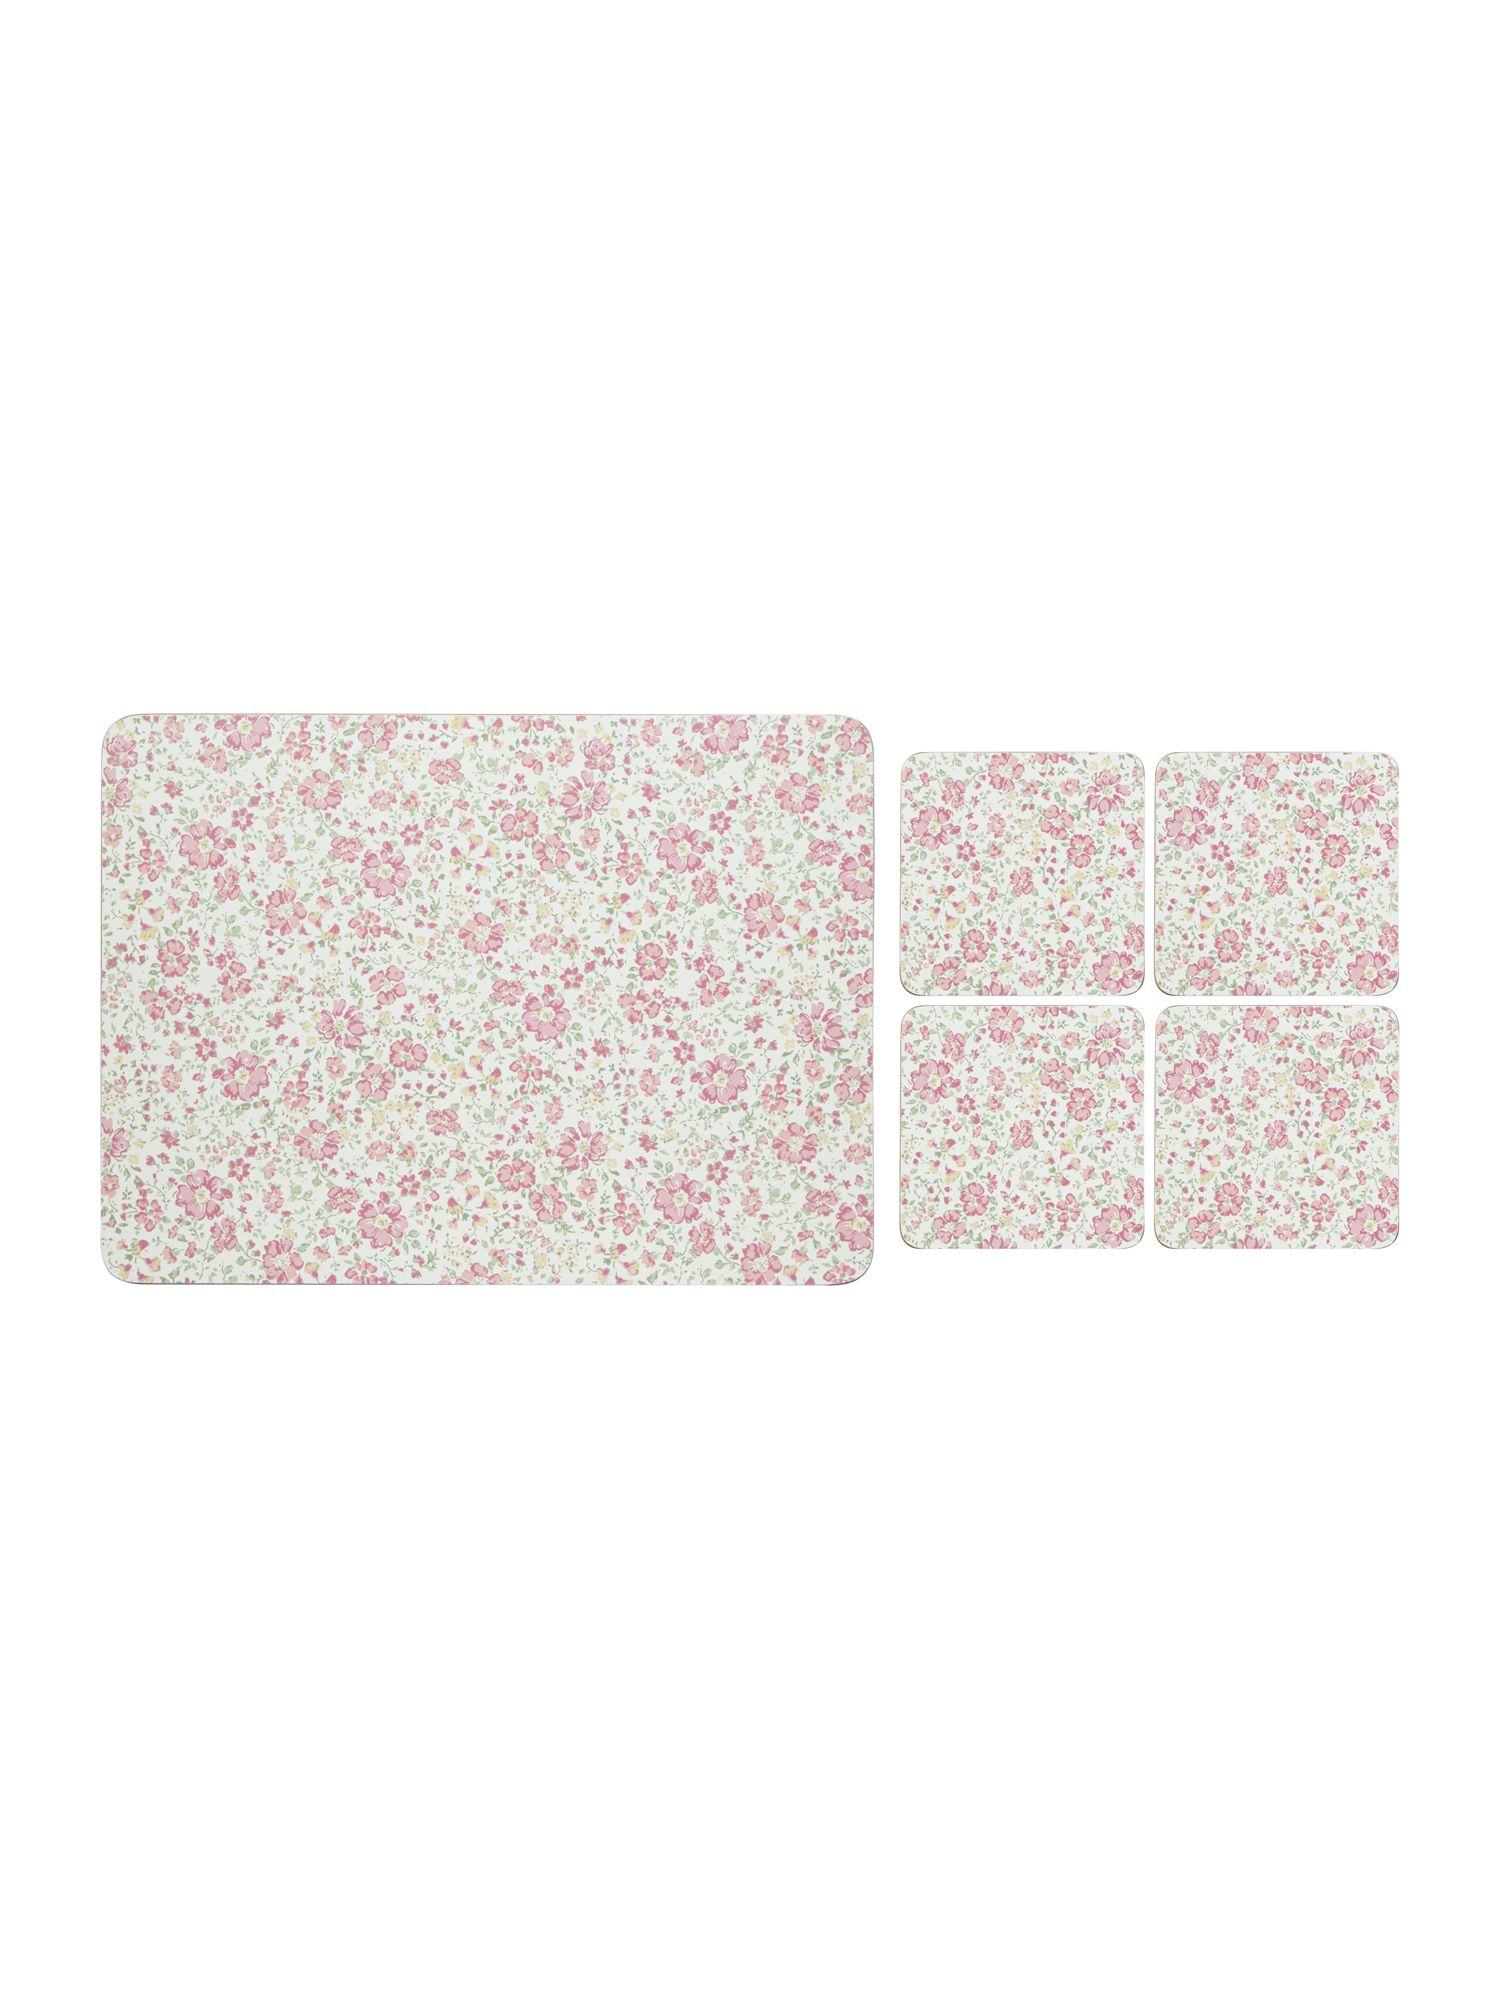 Shabby Chic Shabby Chic Pink Floral Placemat & Coaster Set of 8